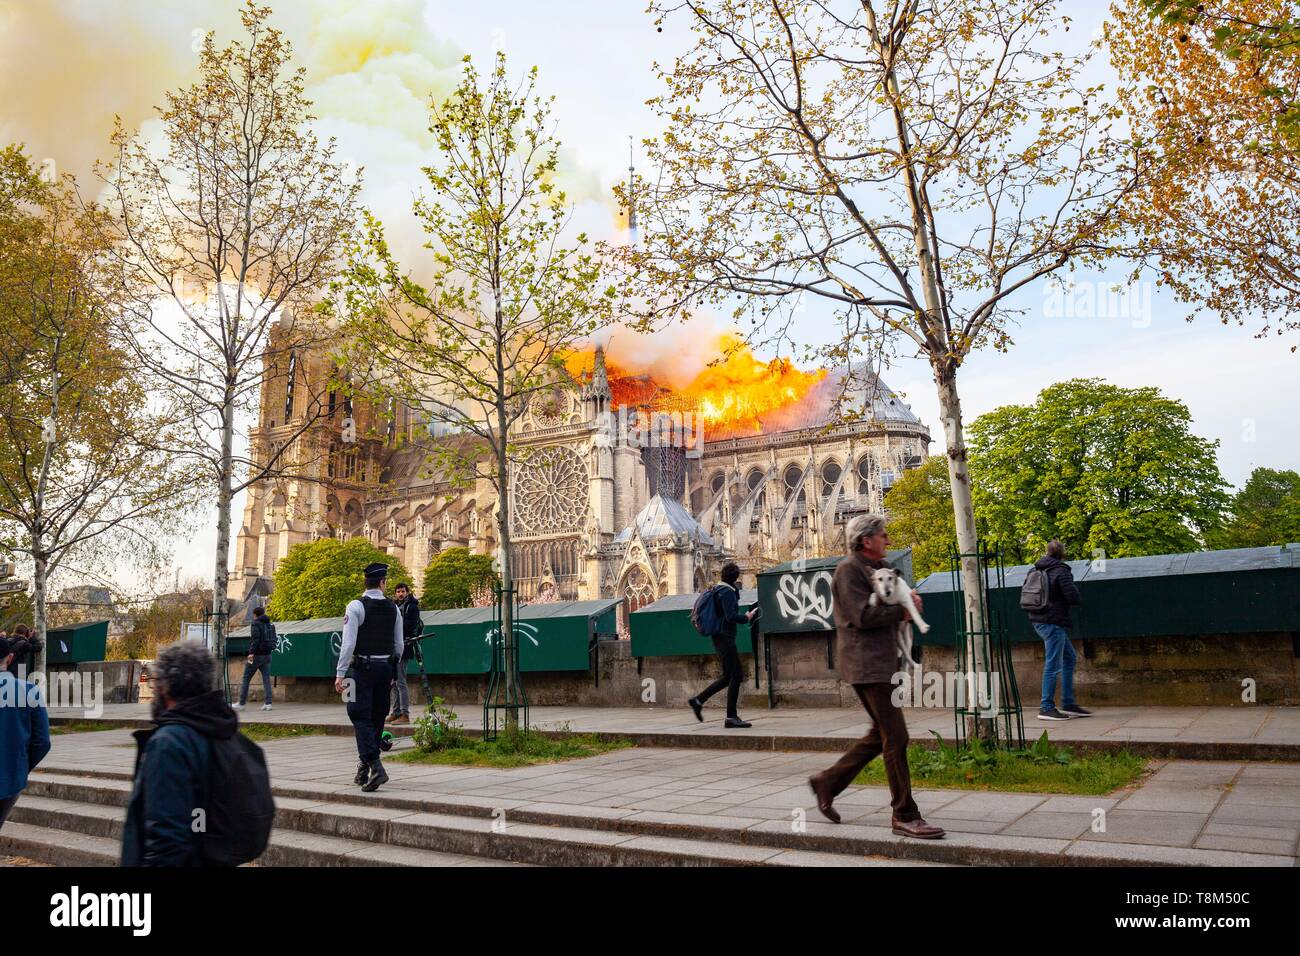 France, Paris, area listed as World Heritage by UNESCO, Notre Dame de Paris Cathedral, fire which ravaged the cathedral on April 15, 2019 - Stock Image